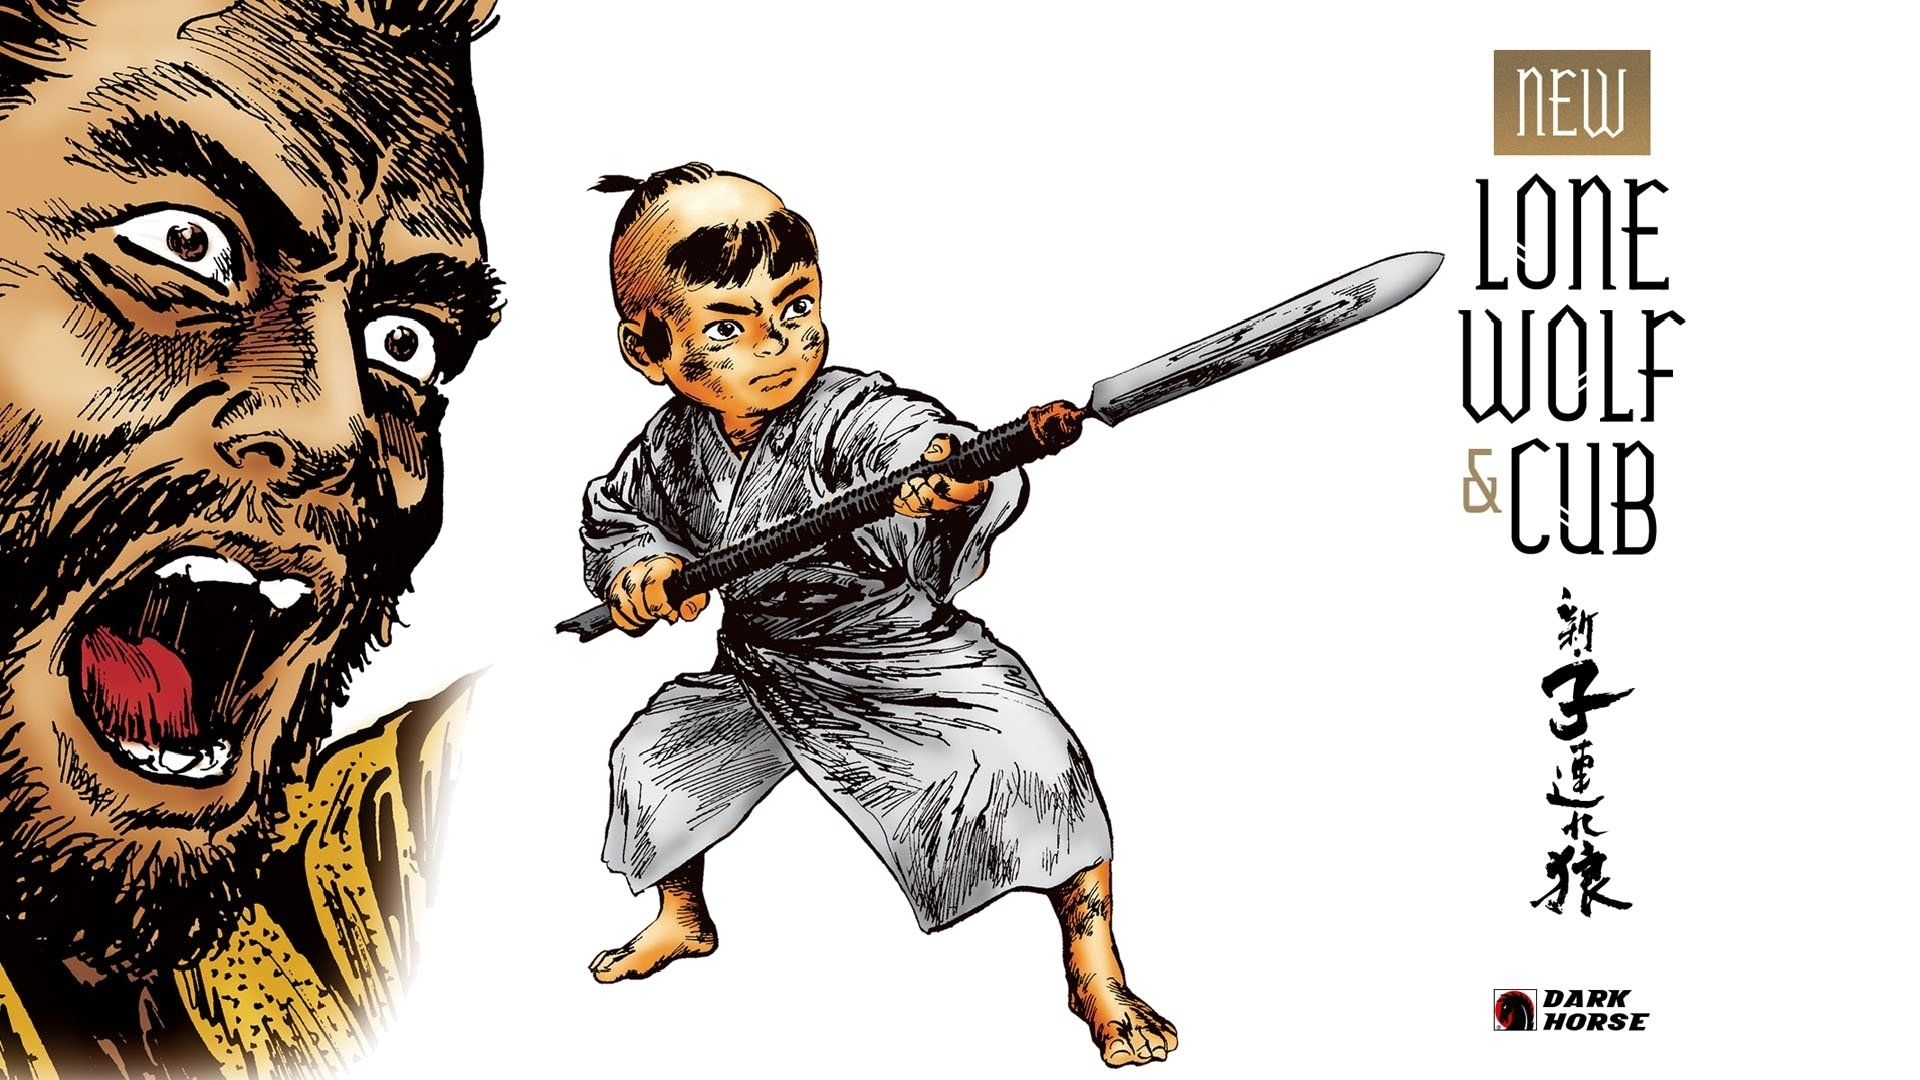 1920x1080 Lone Wolf and Cub HD Wallpaper | Background Image | 1920x1080 | ID ...